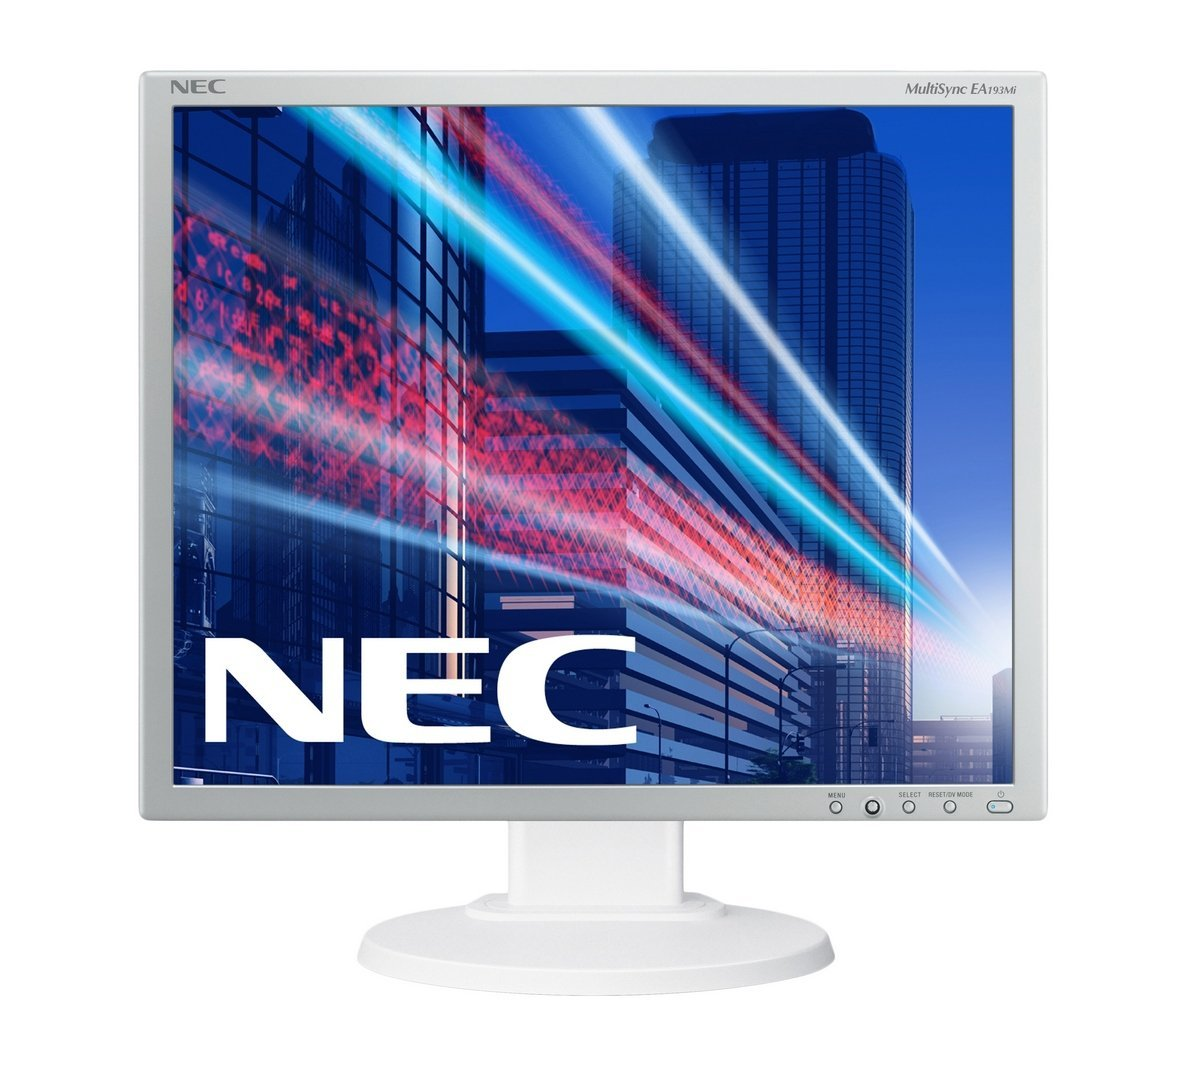 19in LCD monitor with LED backlight IPS